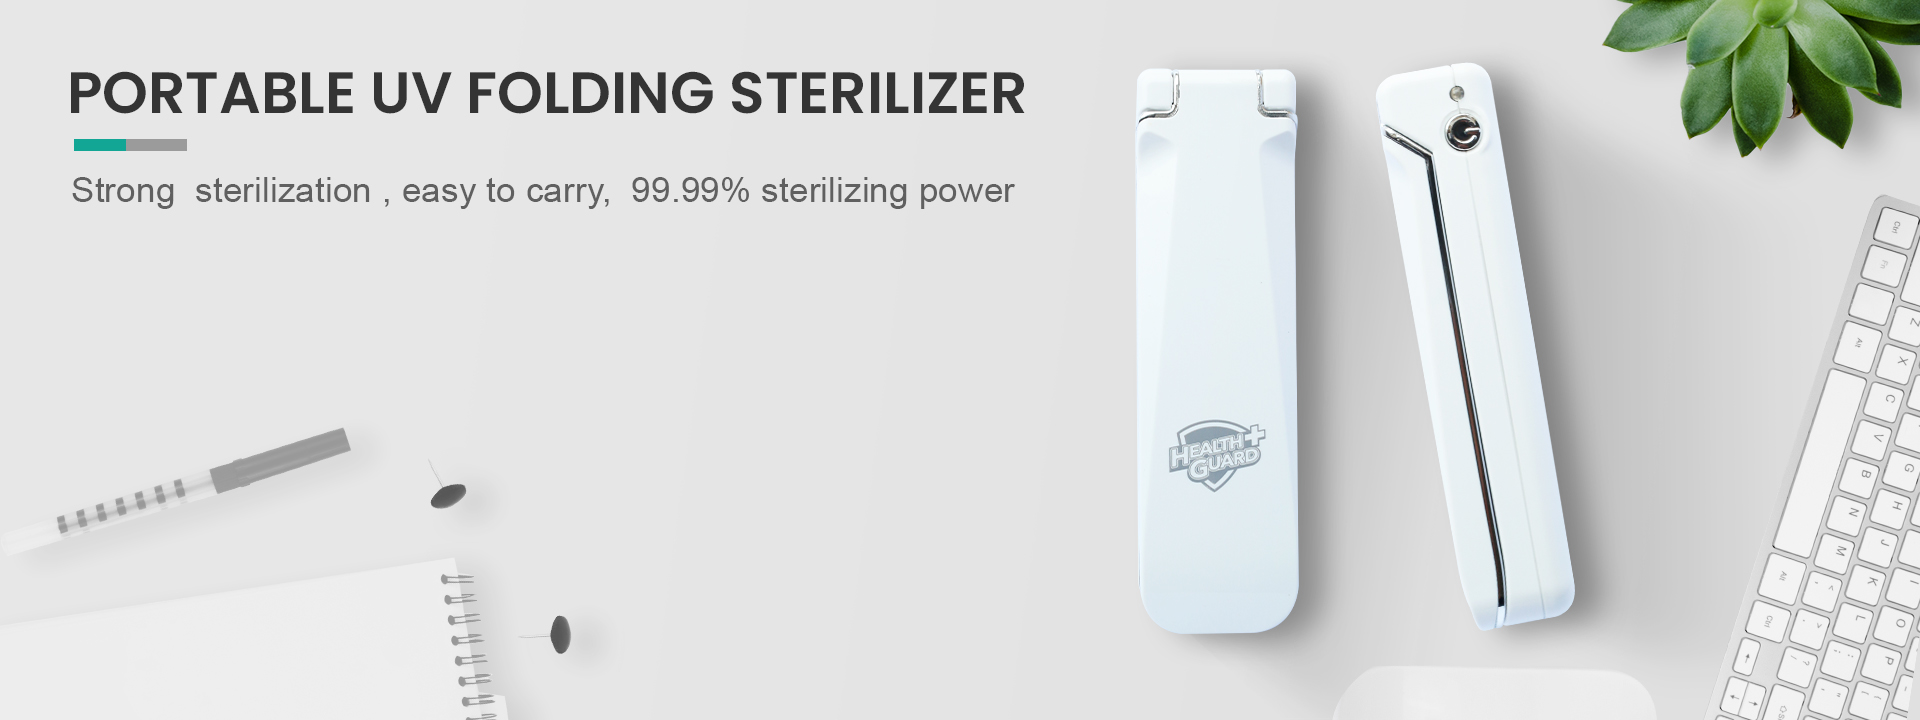 Banner Portable UV folding sterilizers1